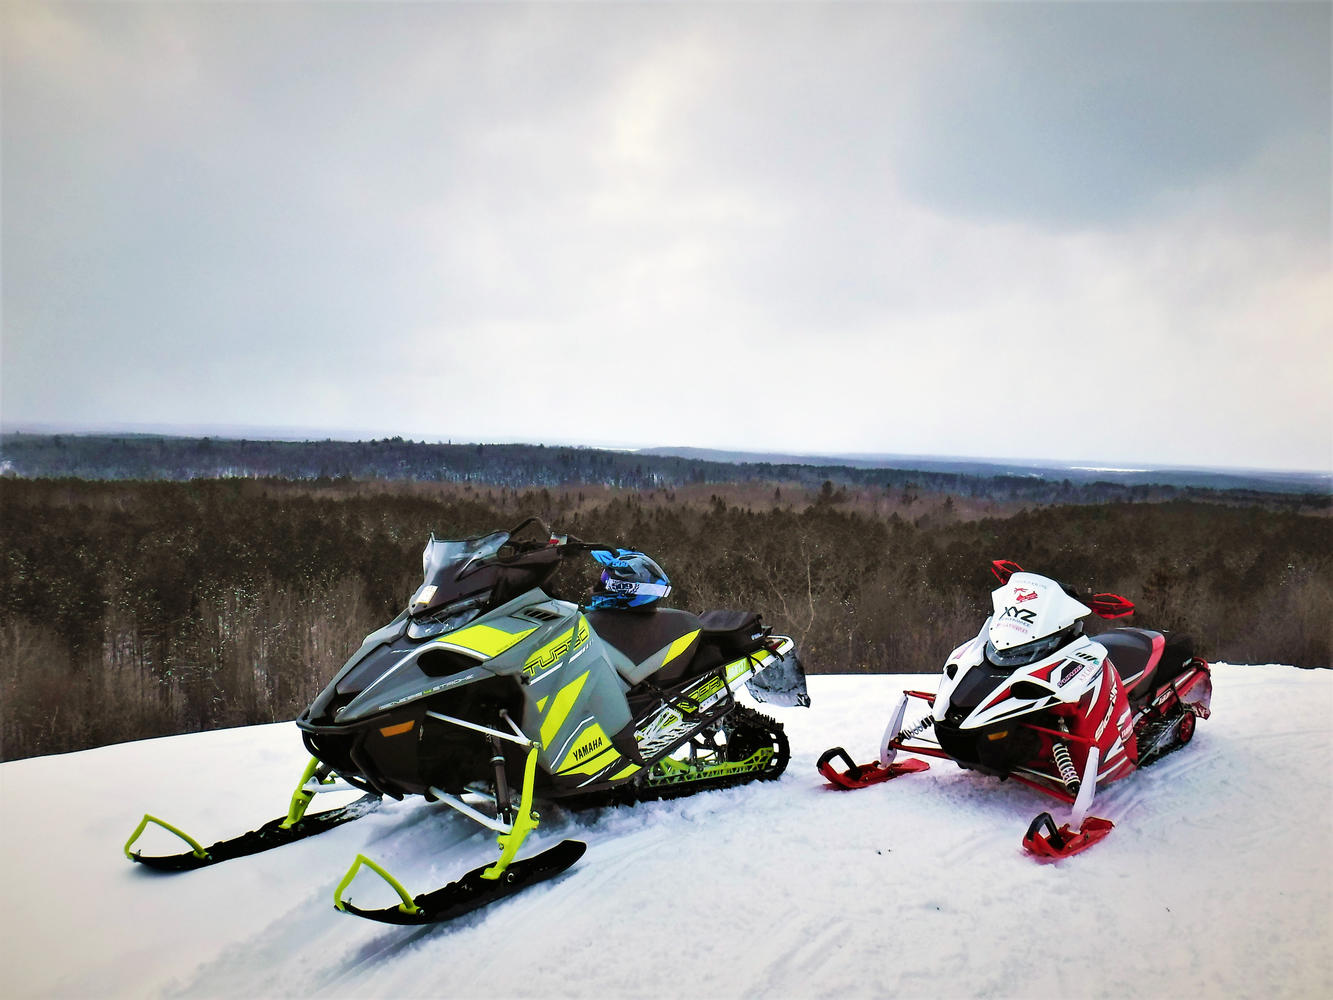 Great view from Bonfield Snowmobile Club trails